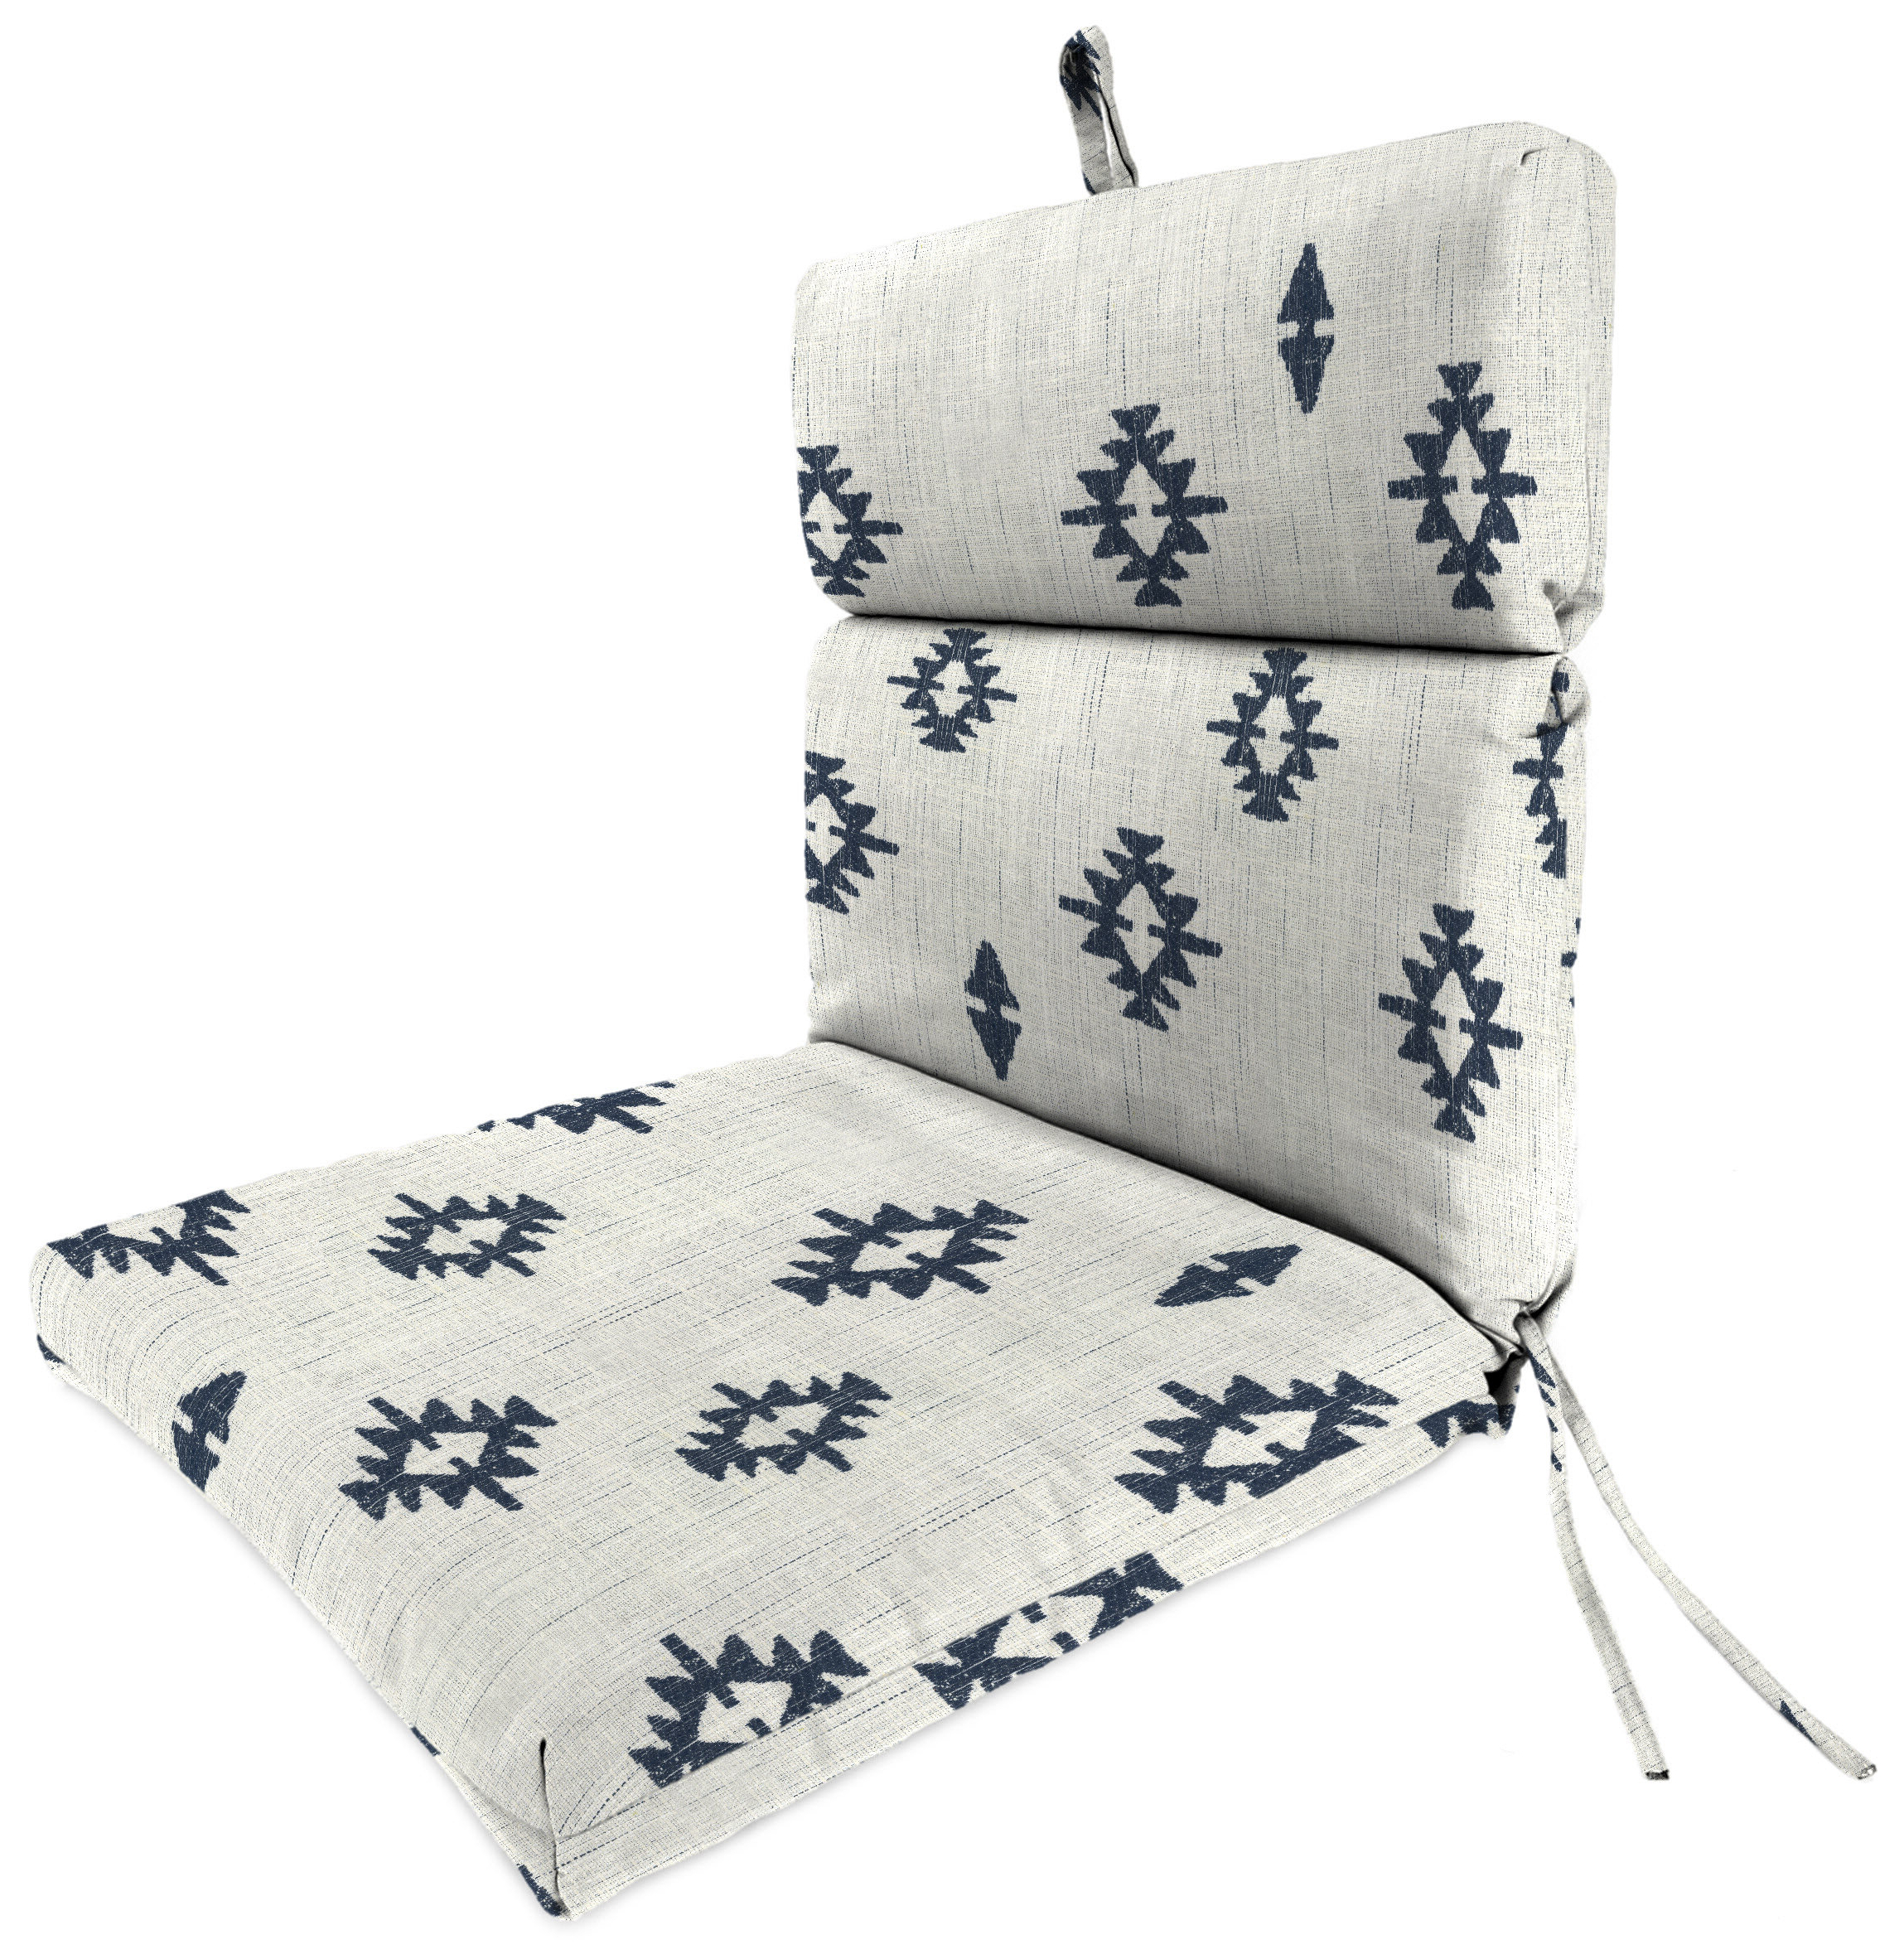 Most Up To Date Chaise Lounge Chairs In White With Navy Cushions Within Indoor/outdoor Lounge Chair Cushion (View 17 of 25)